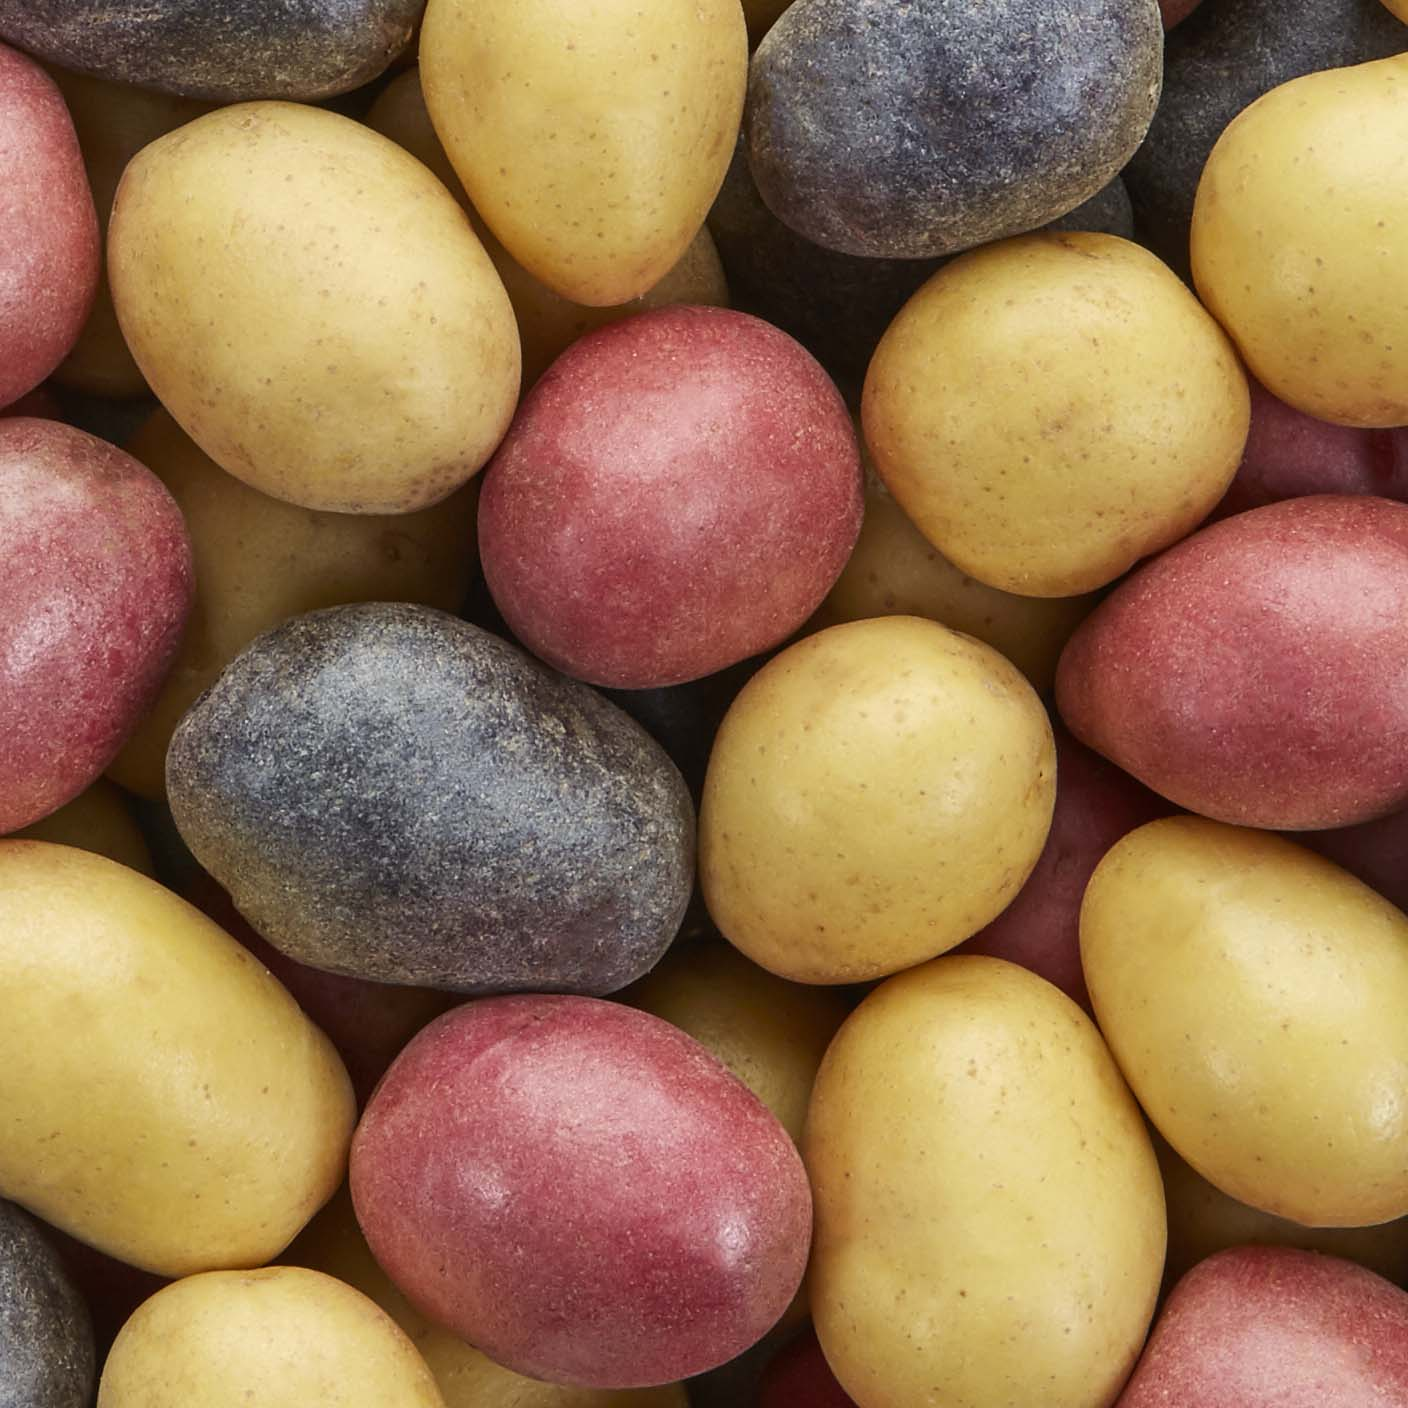 Bite-size potatoes for Thanksgiving